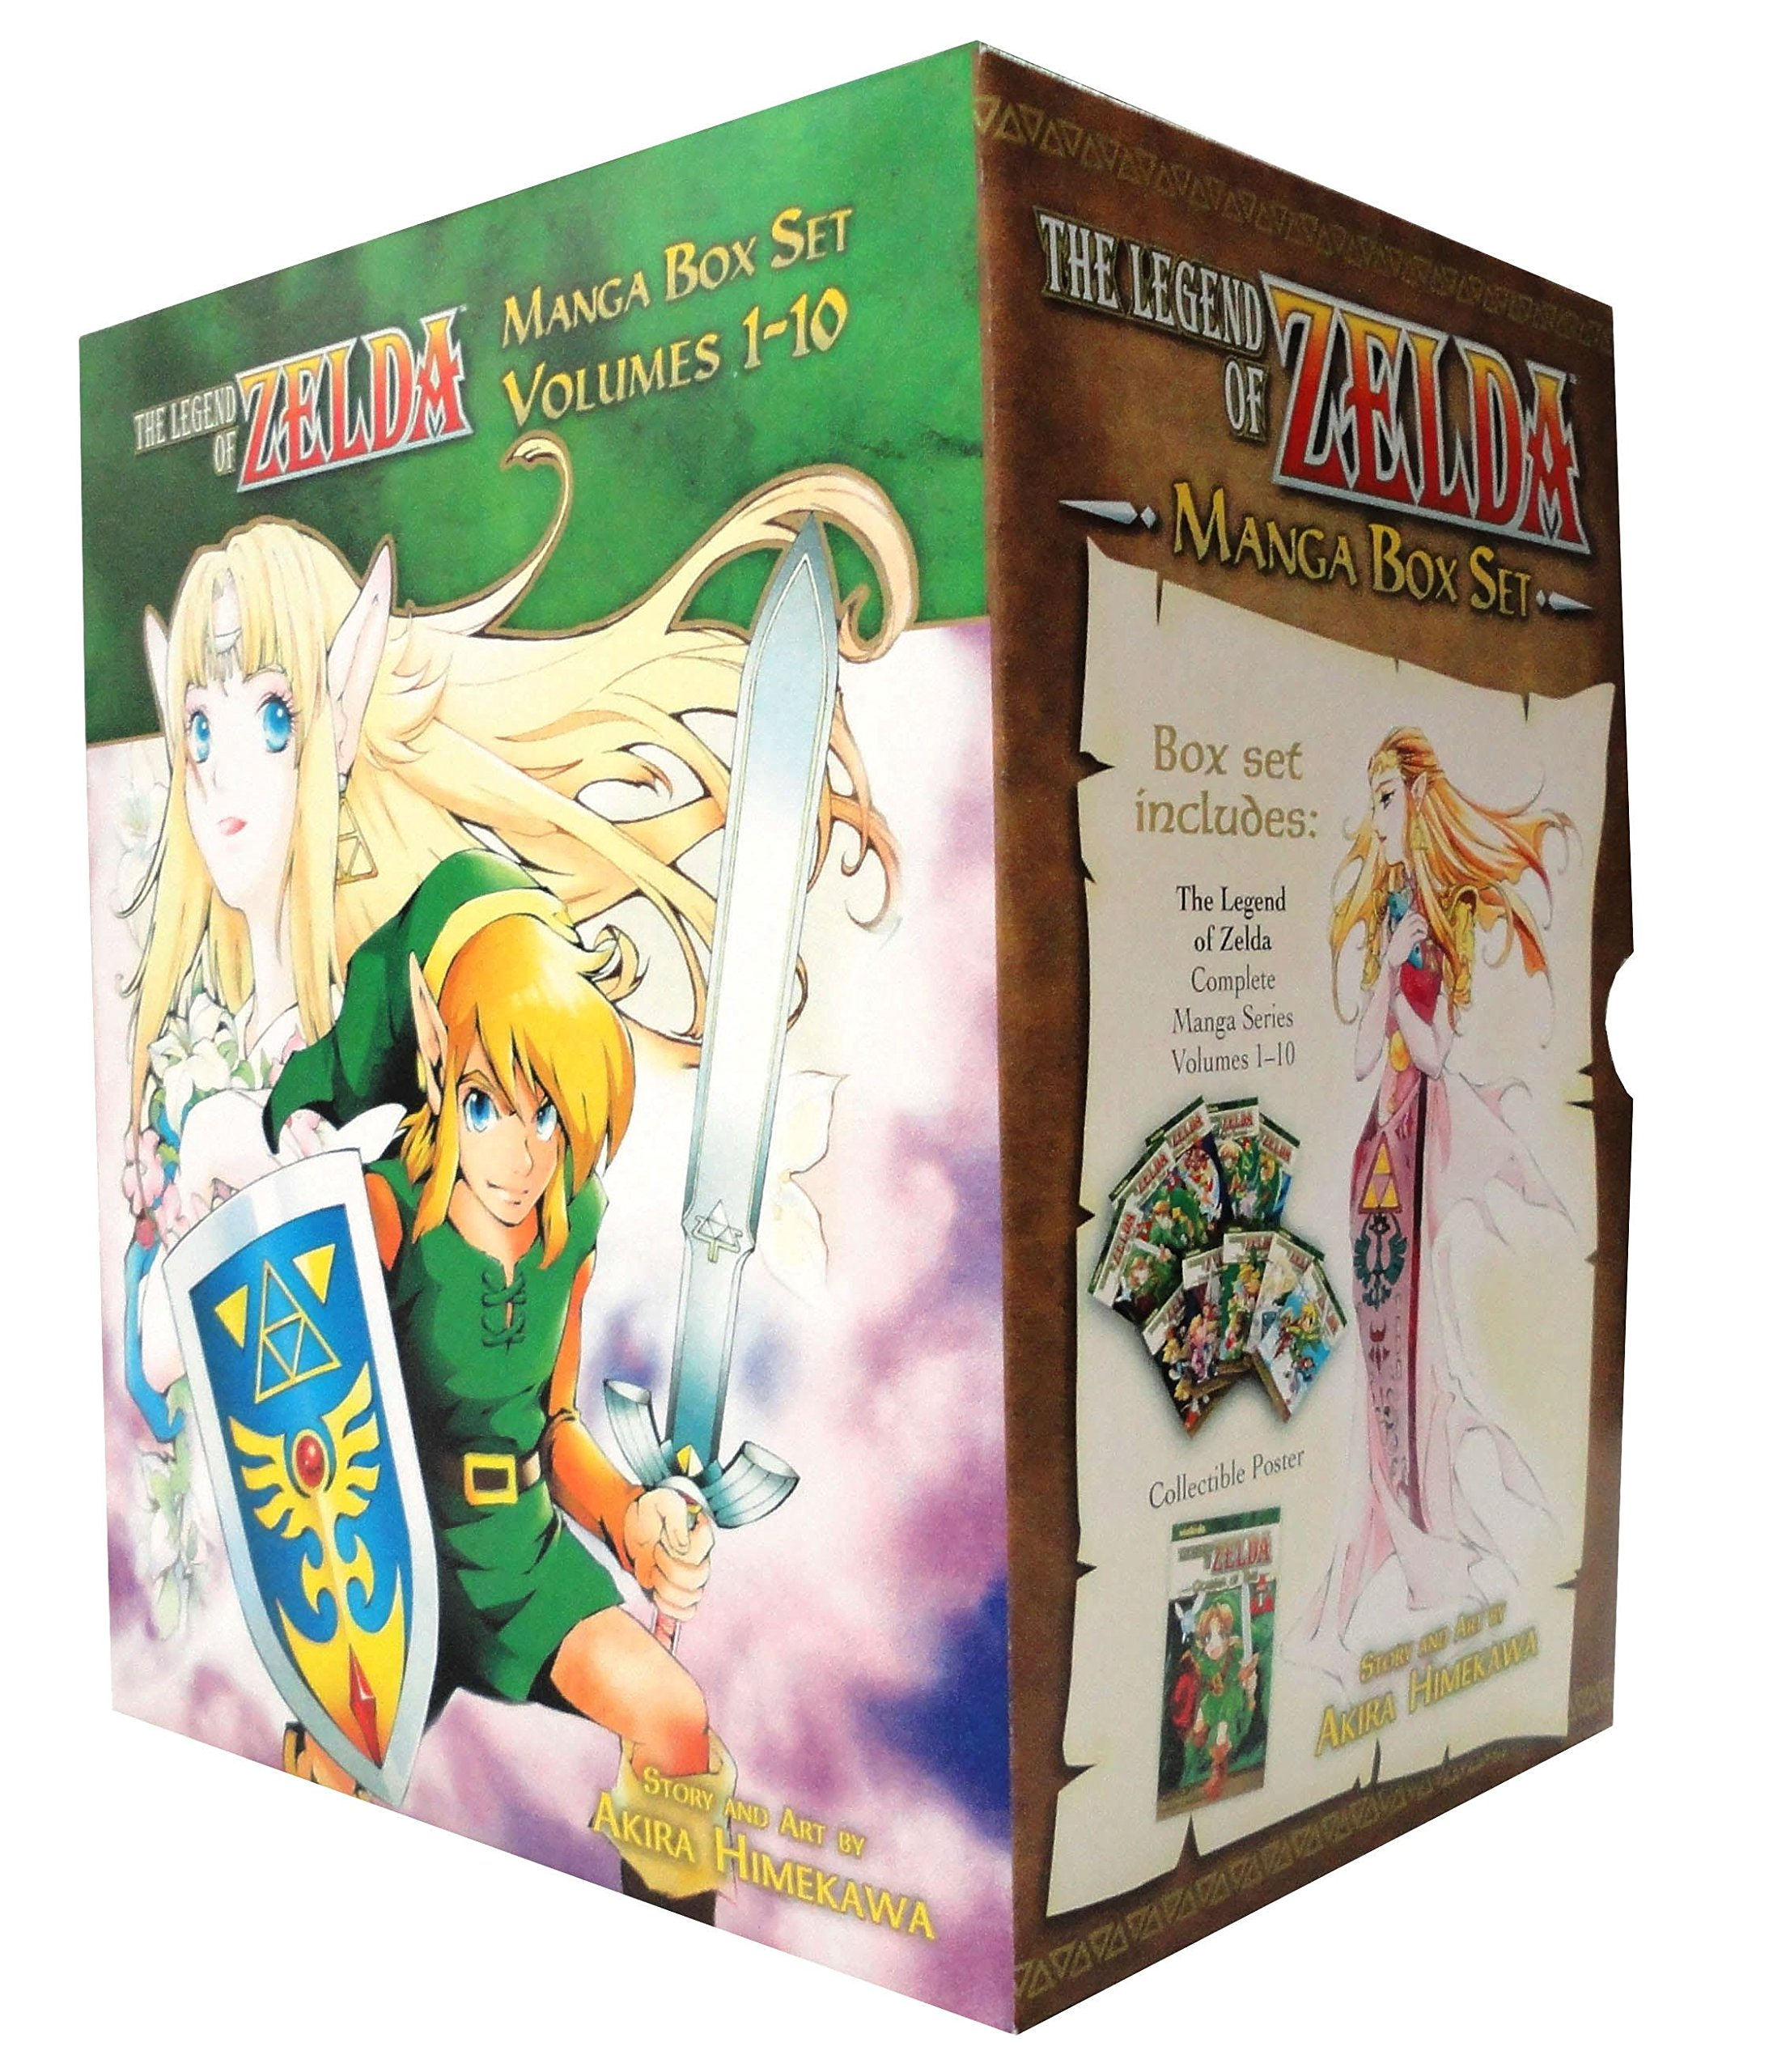 Legend Of Zelda Box Set The Legend of Zelda Idioma Inglés: Amazon.es: Himekawa, Akira: Libros en idiomas extranjeros